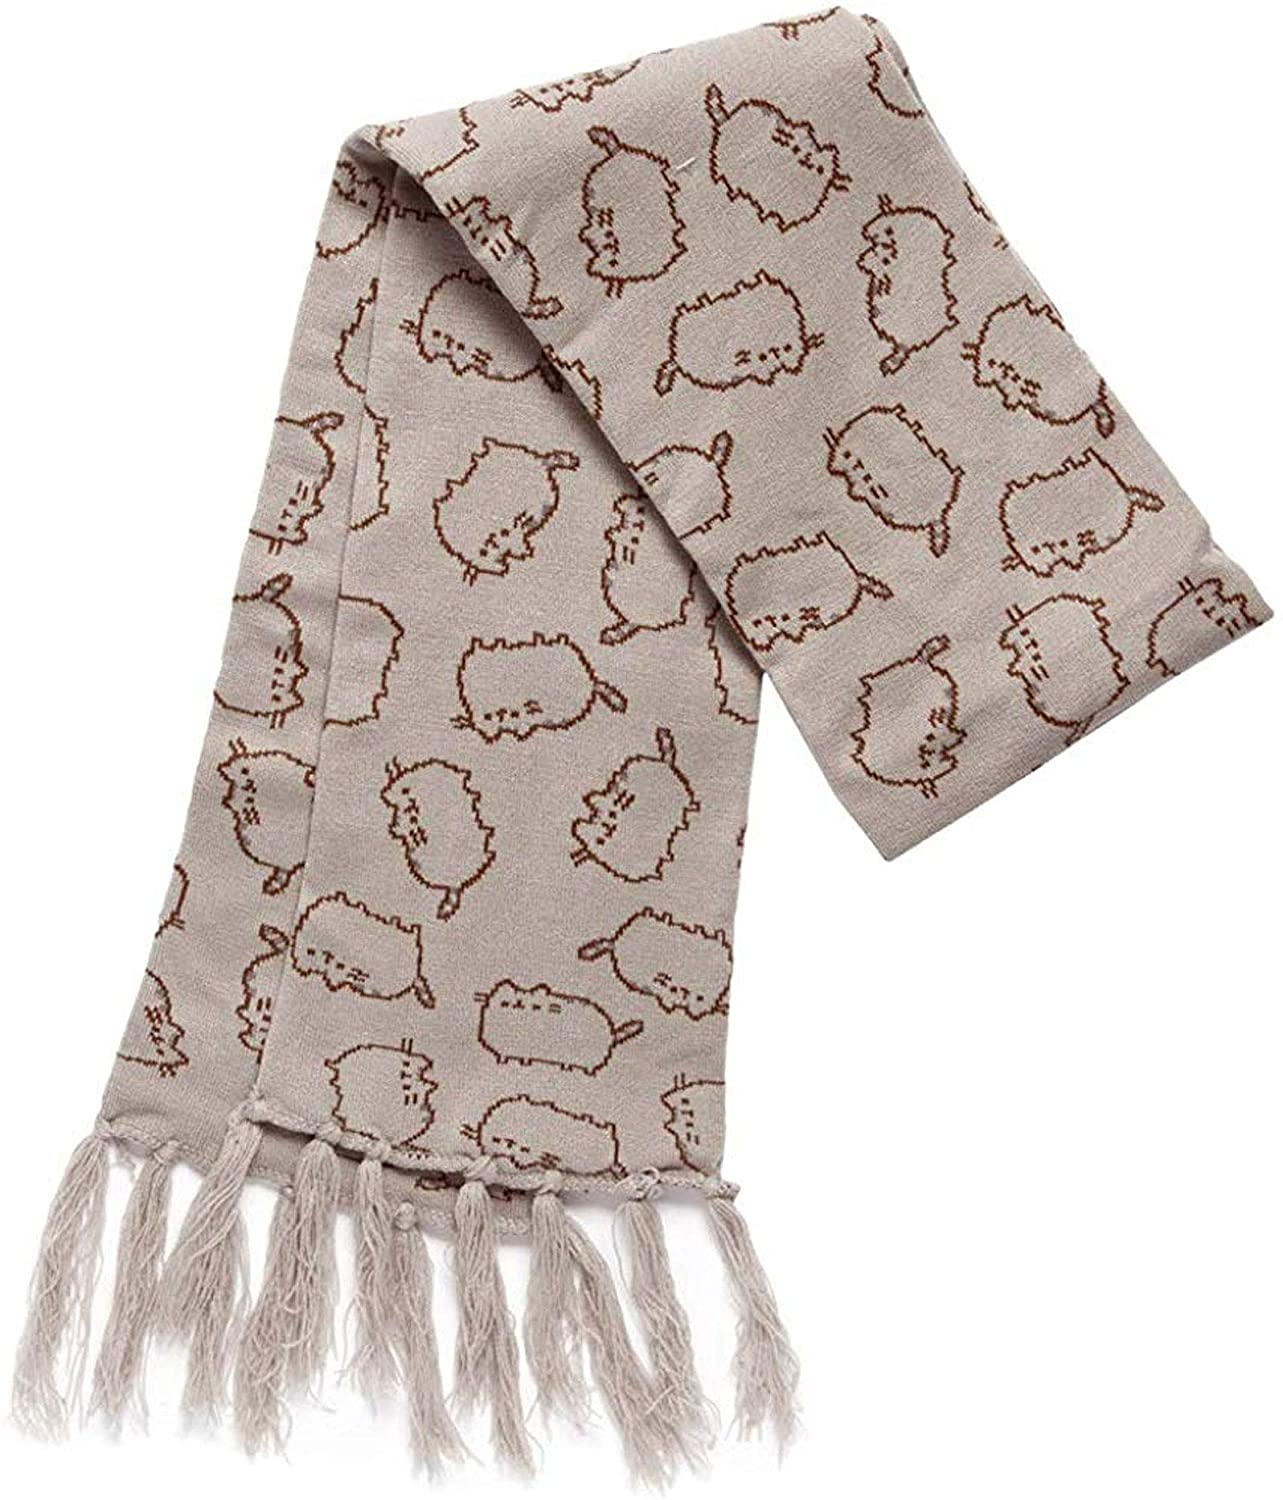 Pusheen The Cat Tossed Knit Fringe Scarf